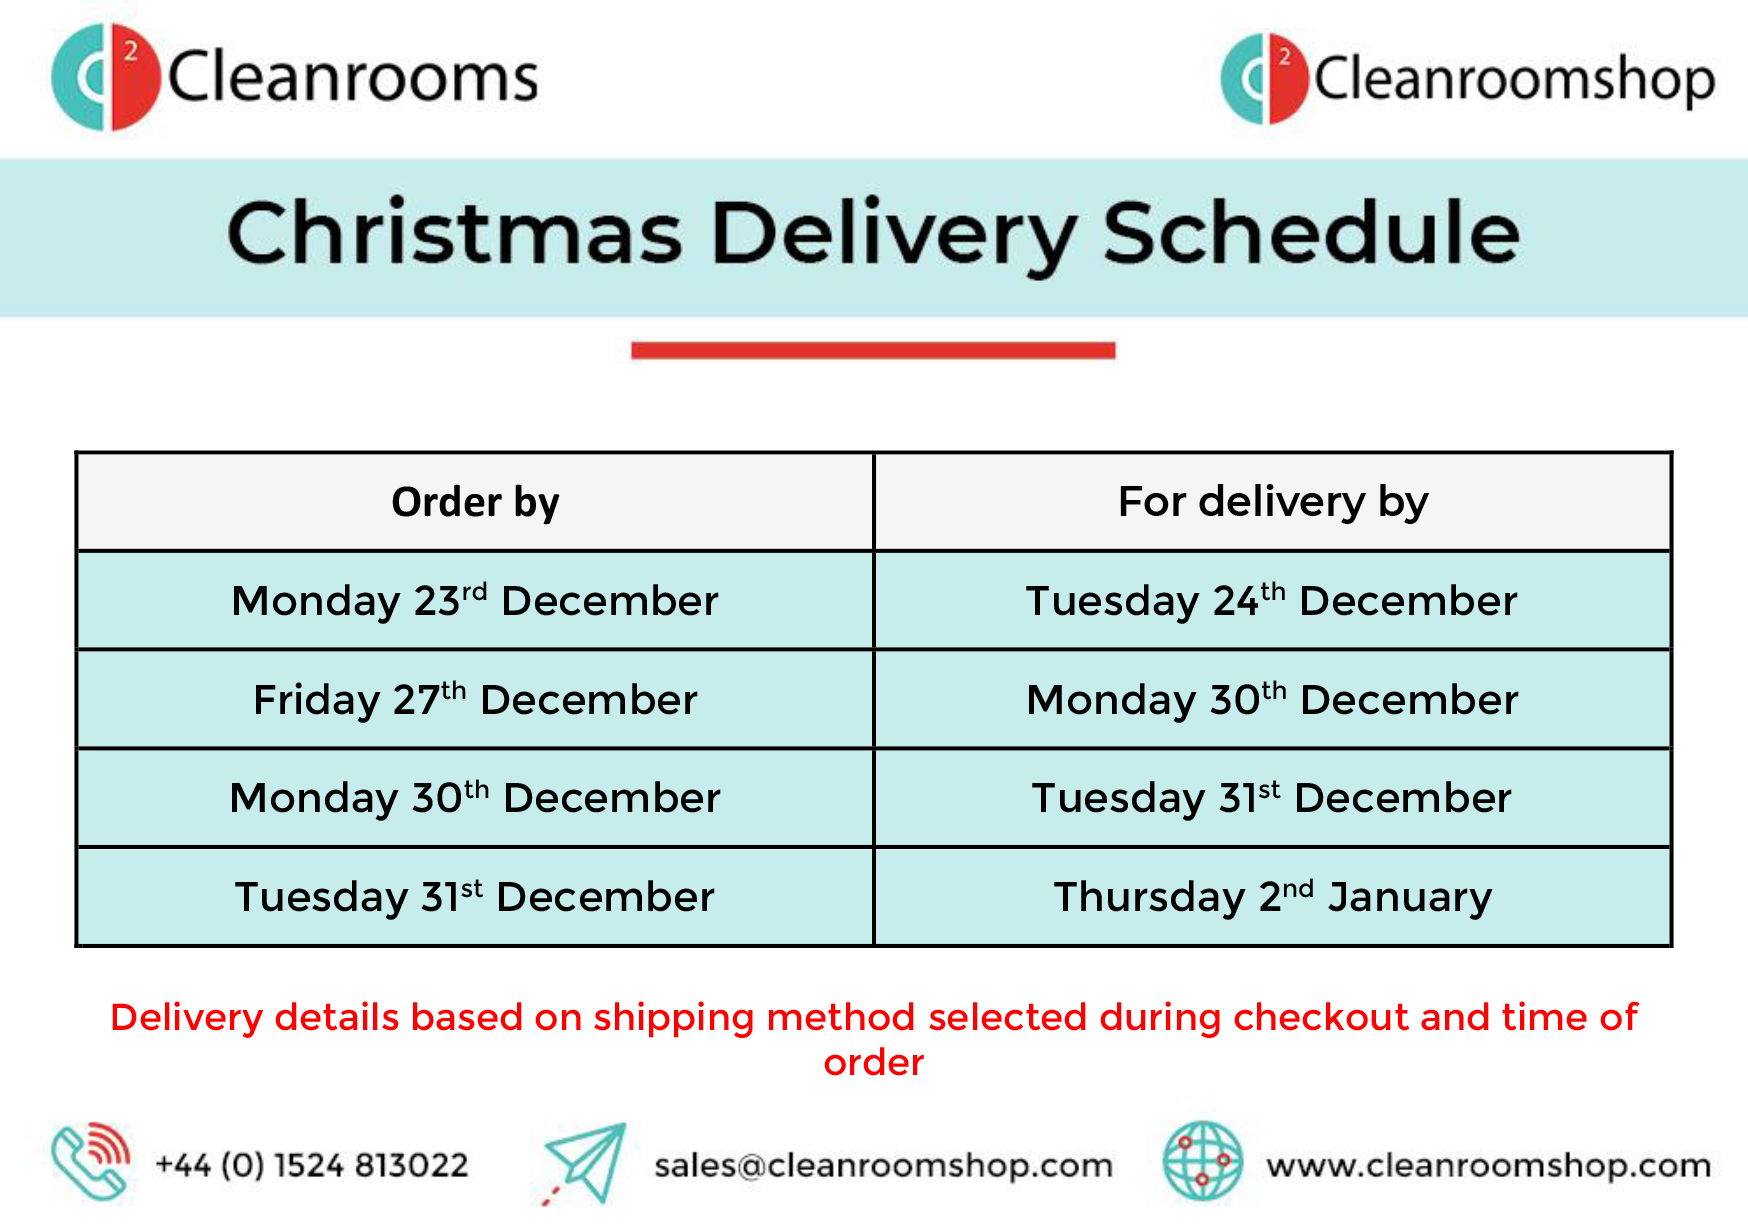 Cleanroomshop Christmas Ordering